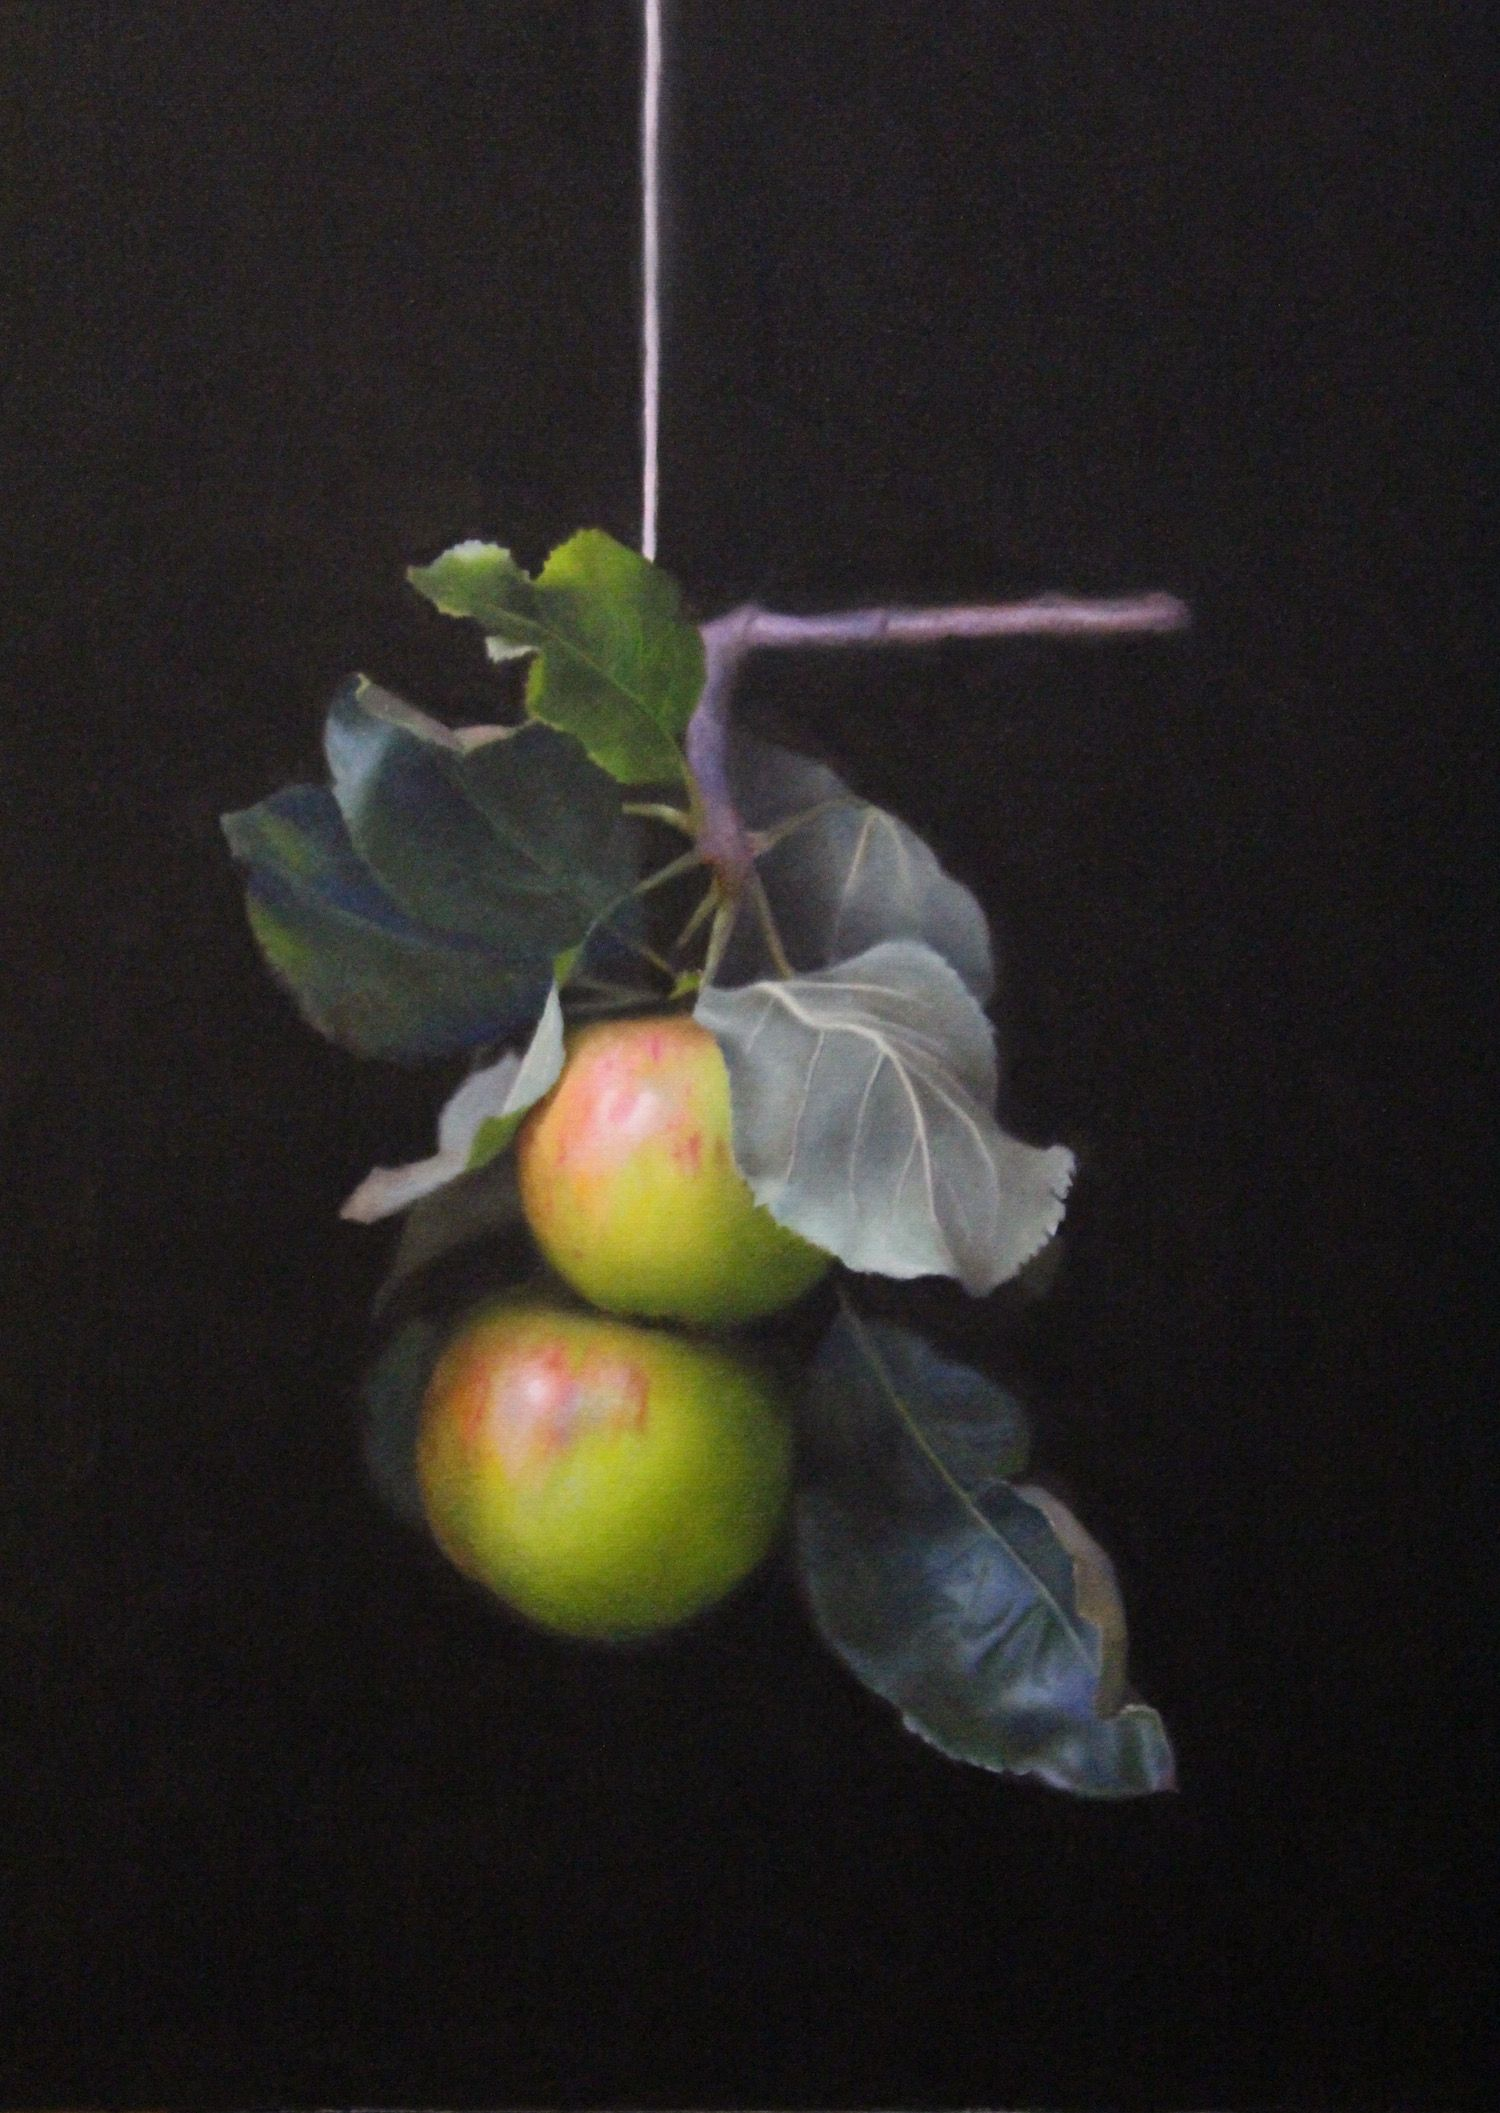 Two Apples by Chris Polunin